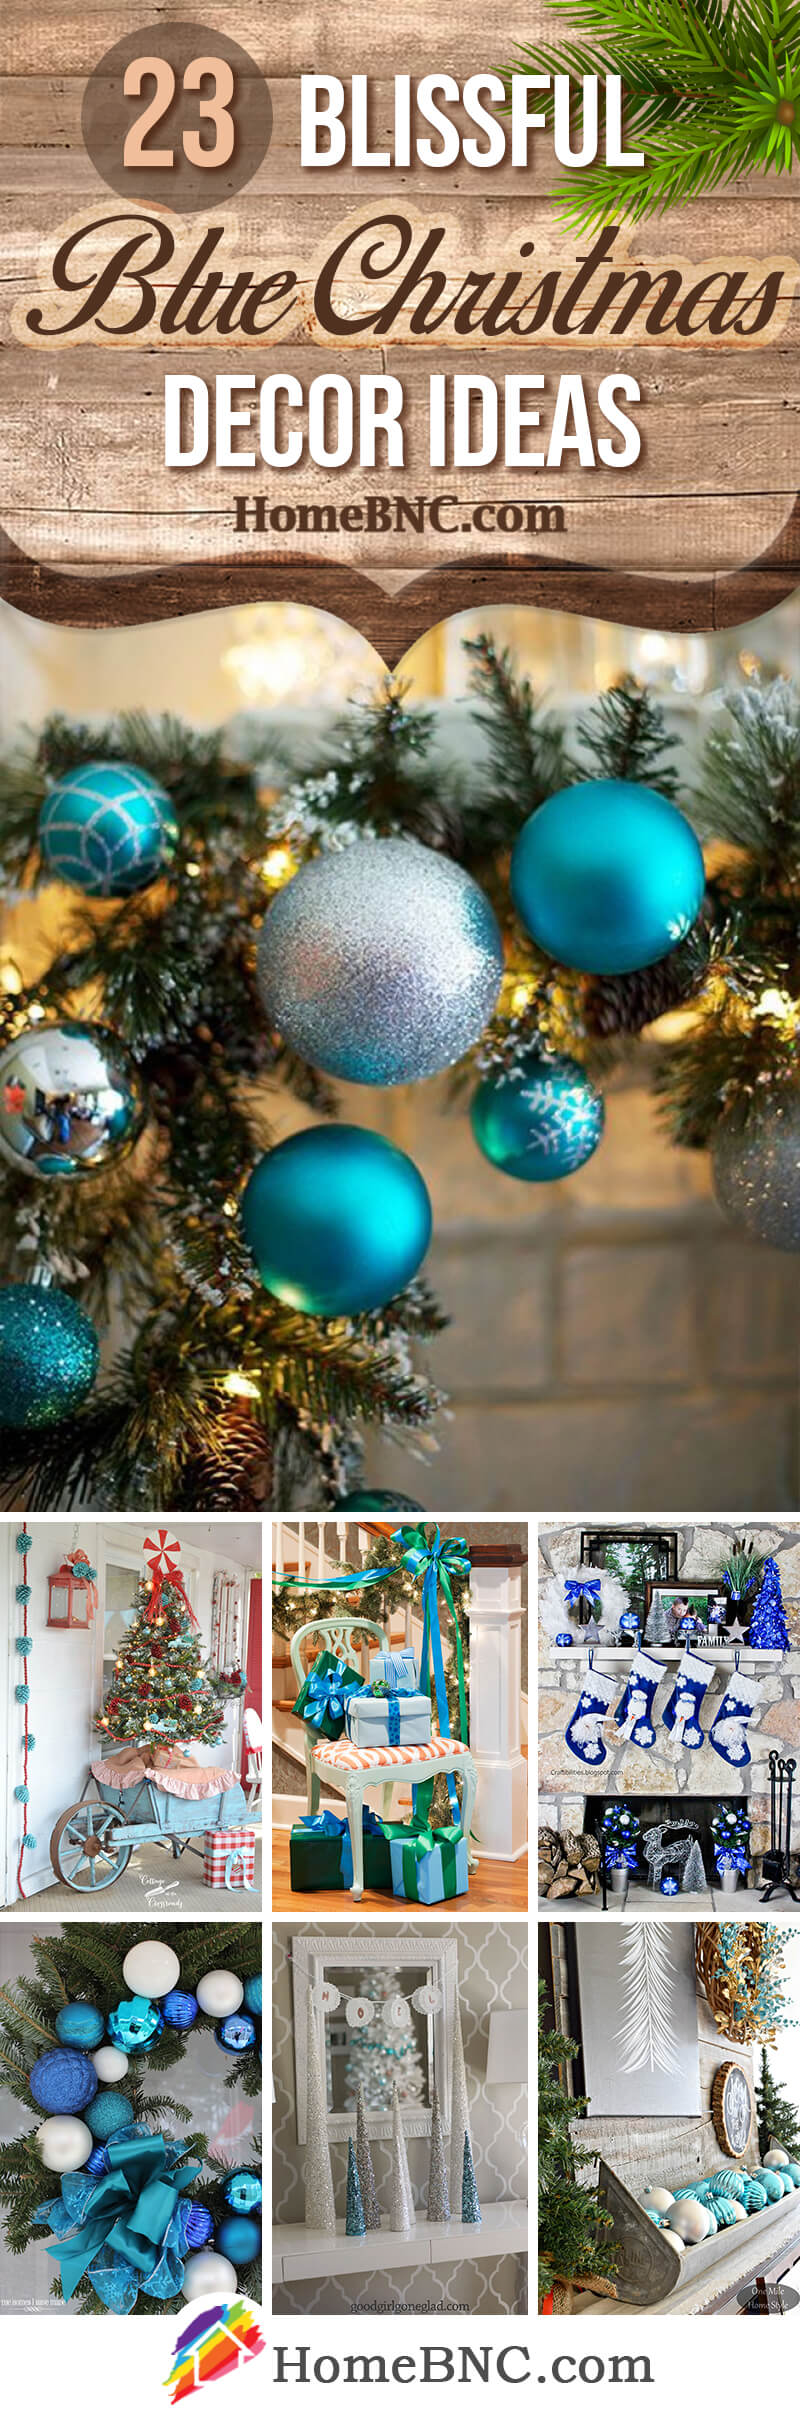 Blue Christmas Decor Ideas